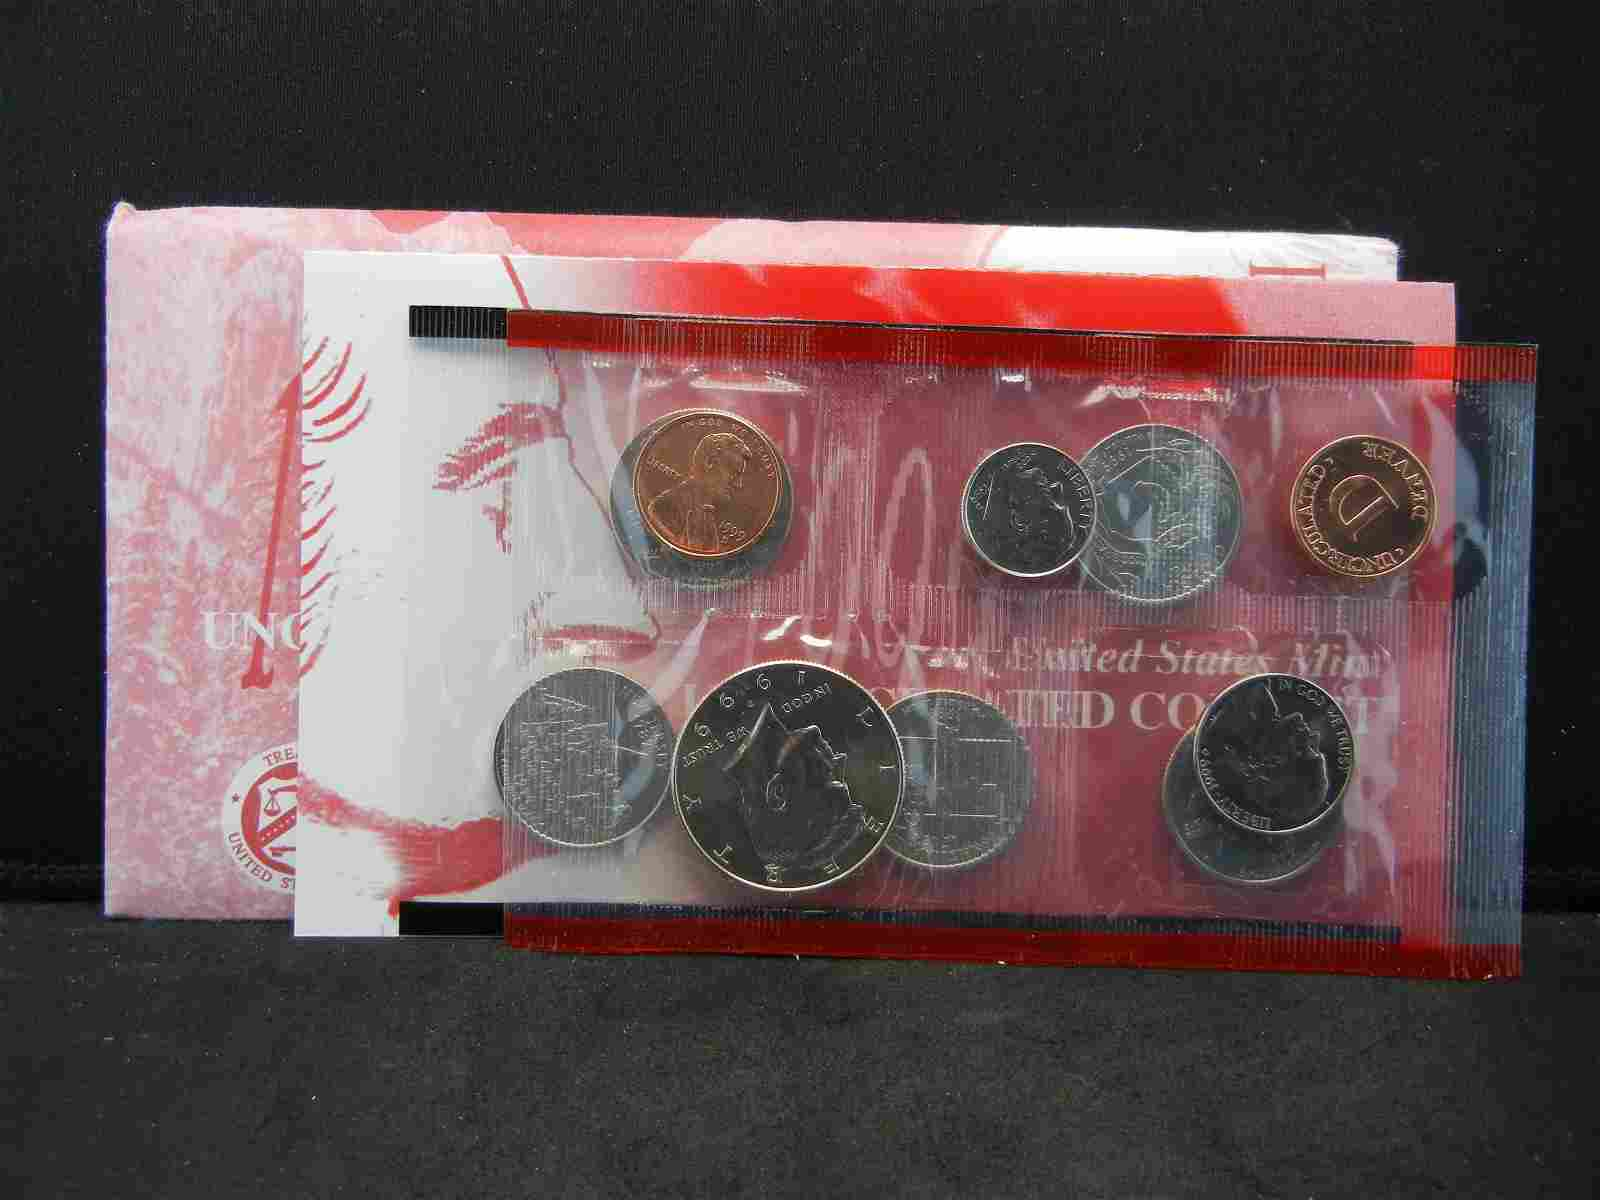 1999 DENVER US UNCIRCULATED MINT SET - WITH STATE